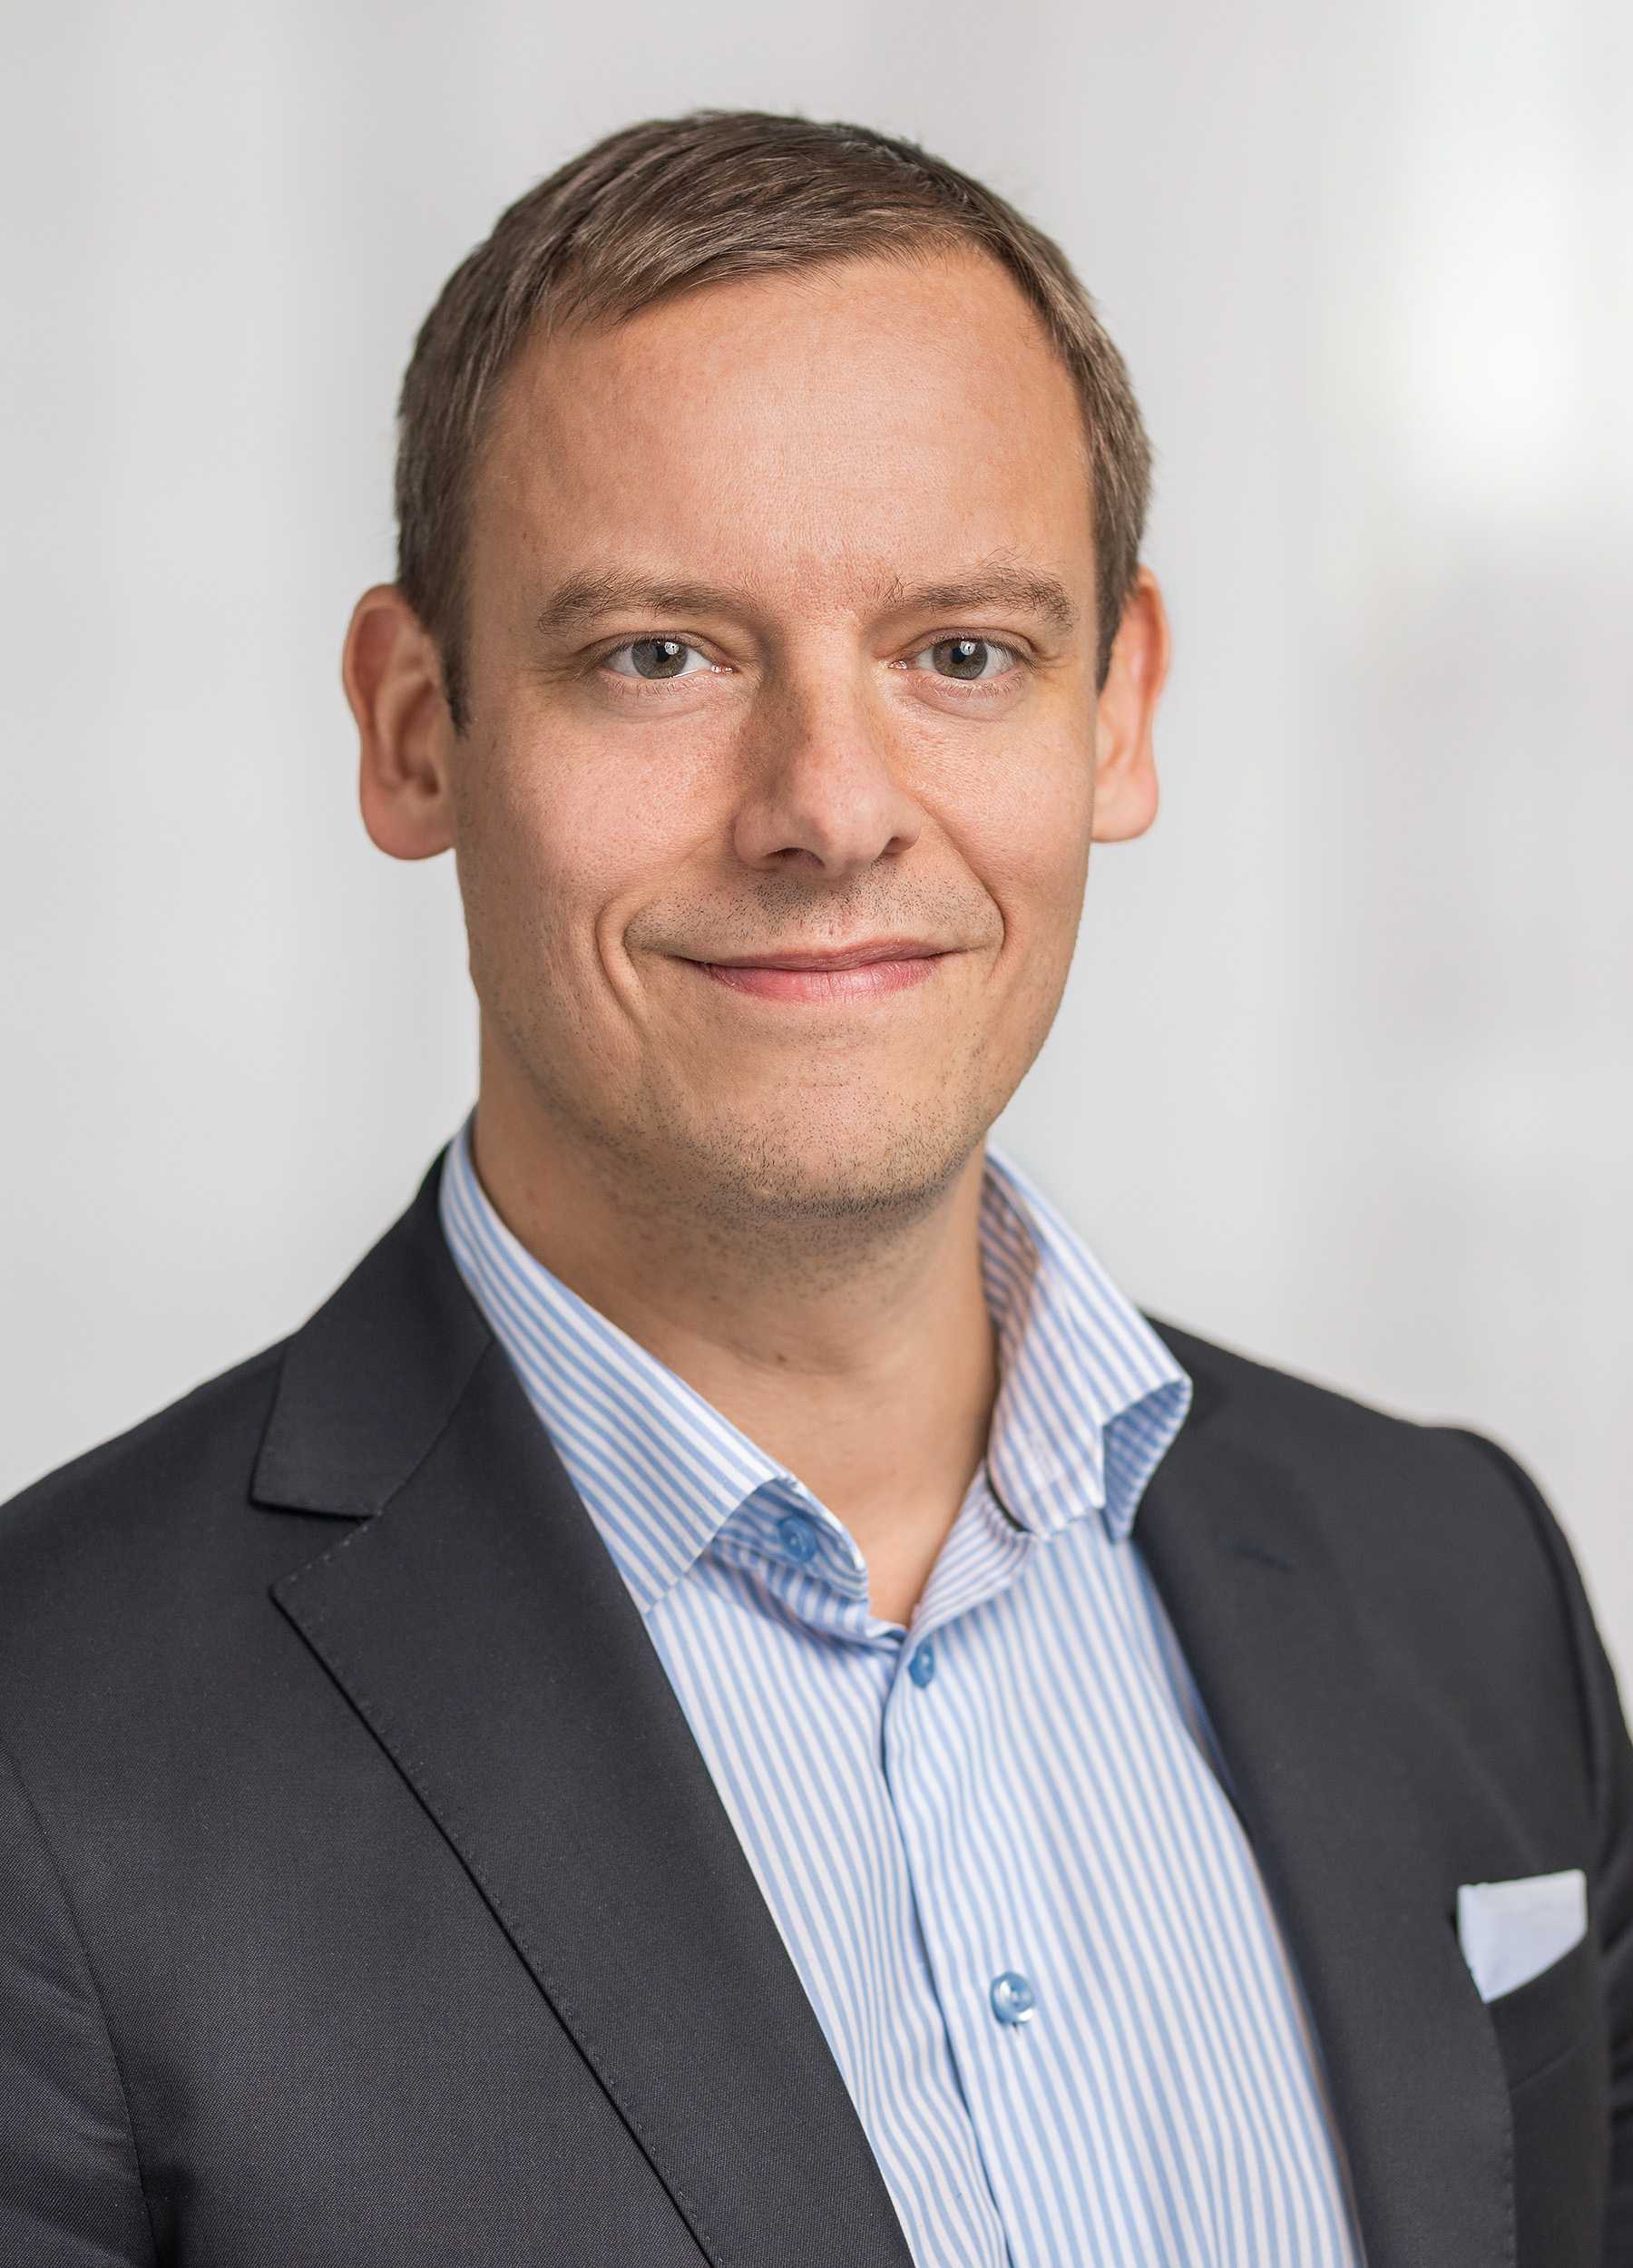 Bild Jens Grebäck, head of sales på Swedbank Robur